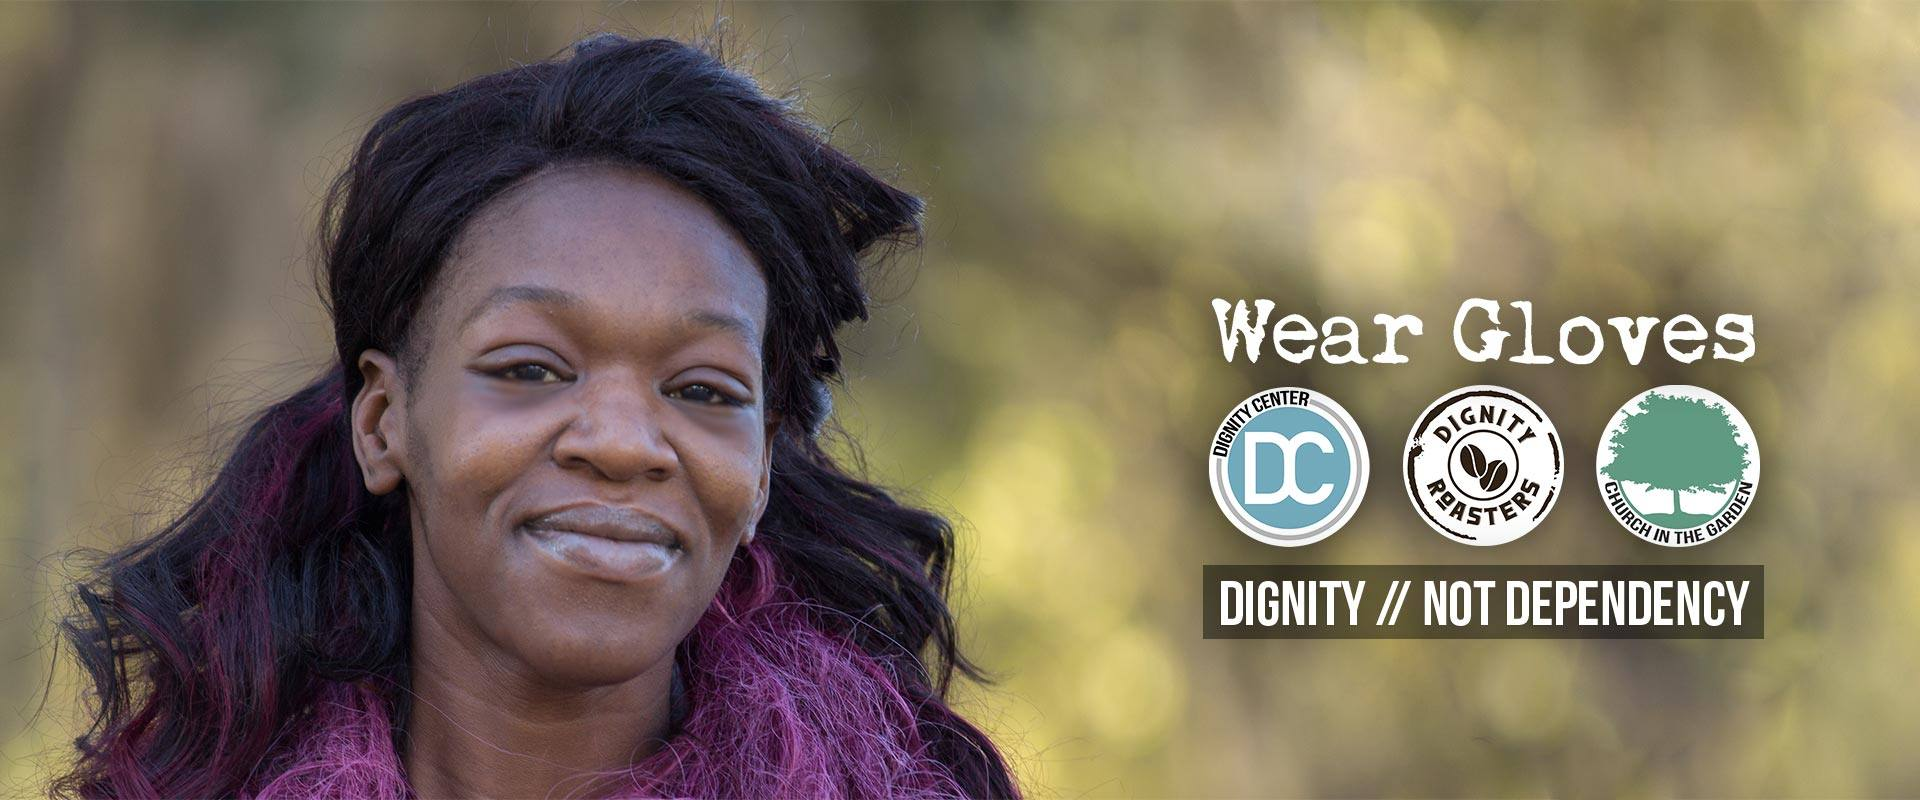 Wear Gloves. DIgnity, Not Dependency